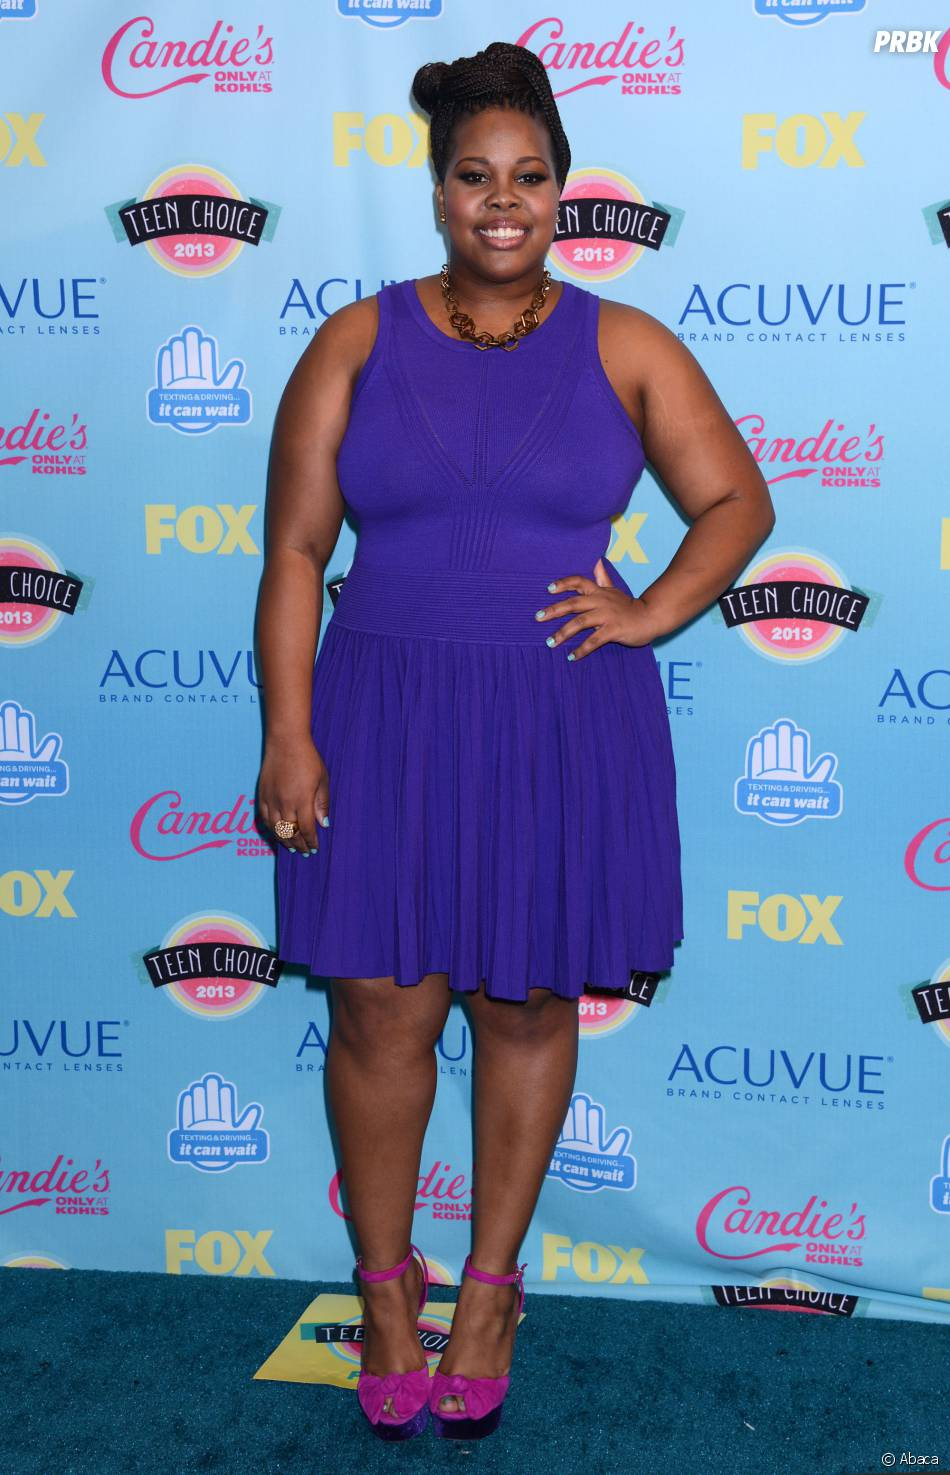 Amber Riley sur le tapis rouge des Teen Choice Awards 2013